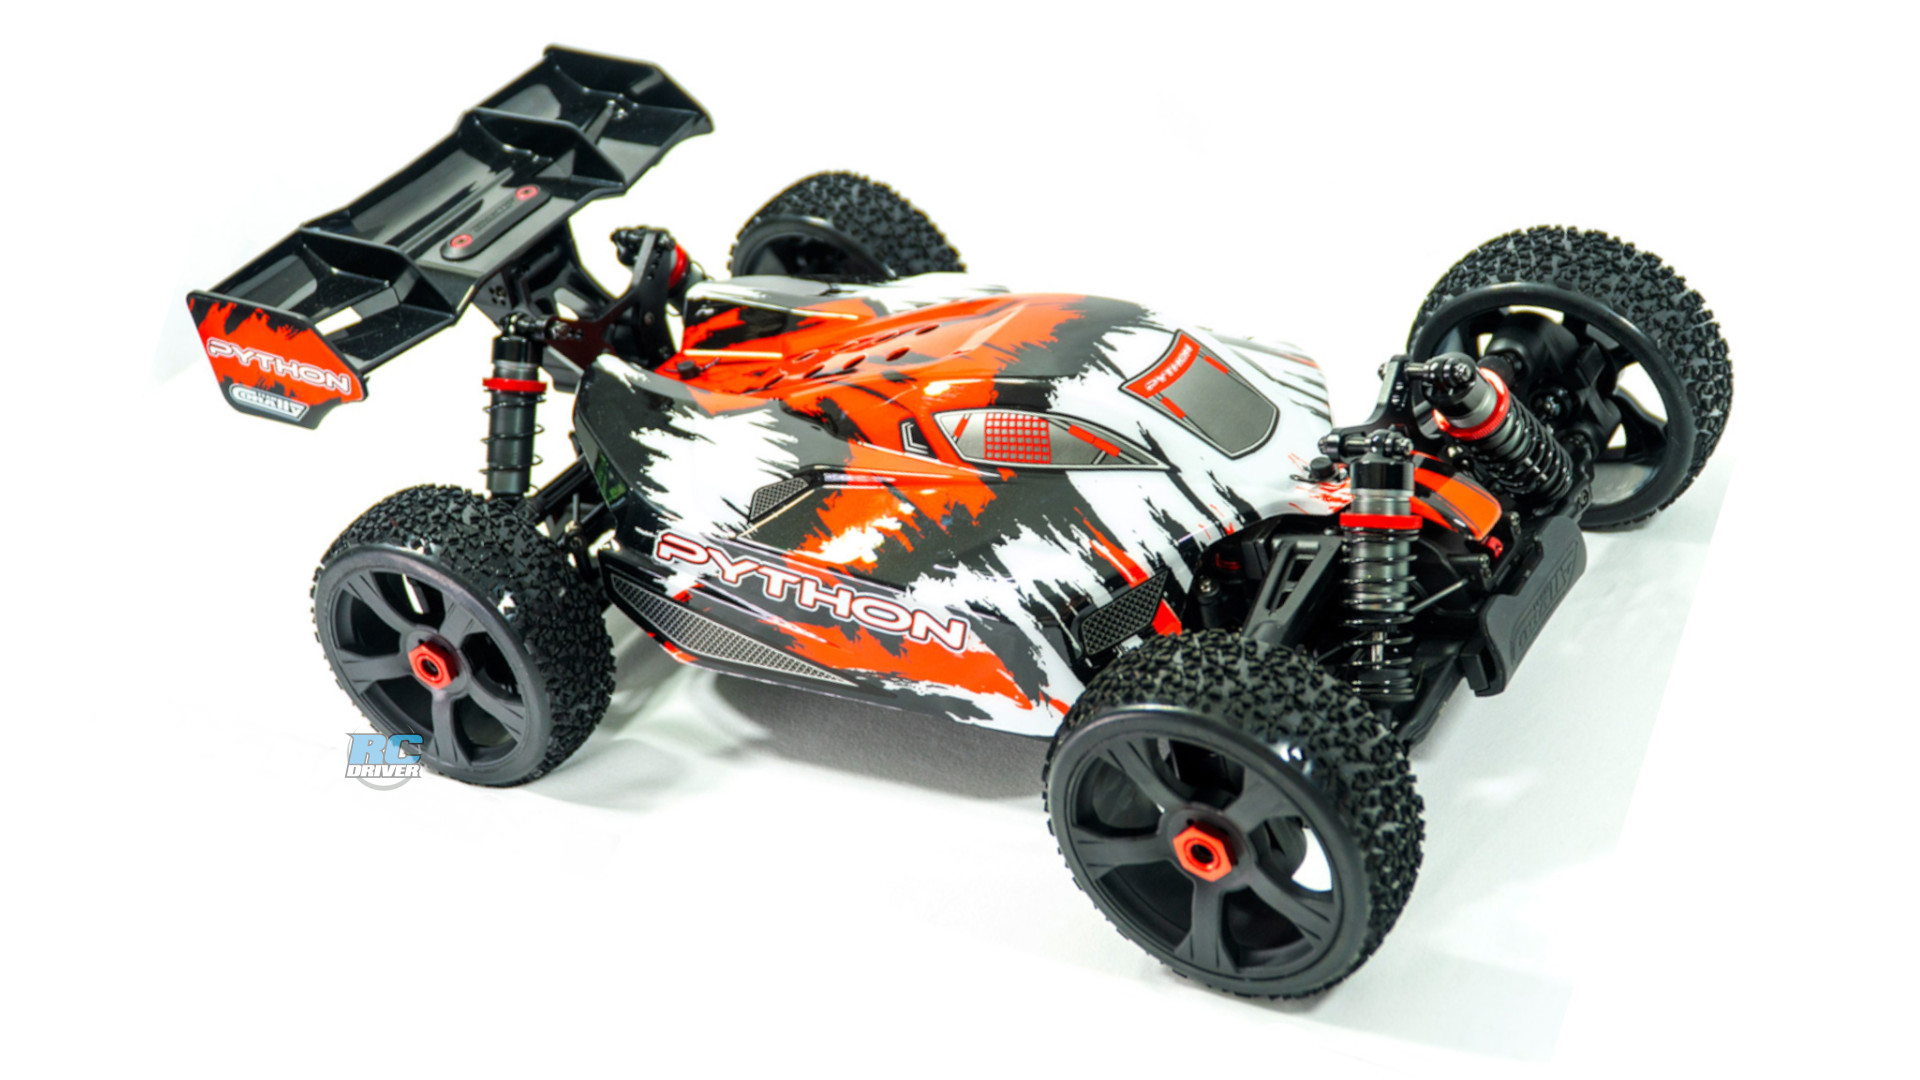 Corally Python XP 6S 1/8-scale Racing Buggy